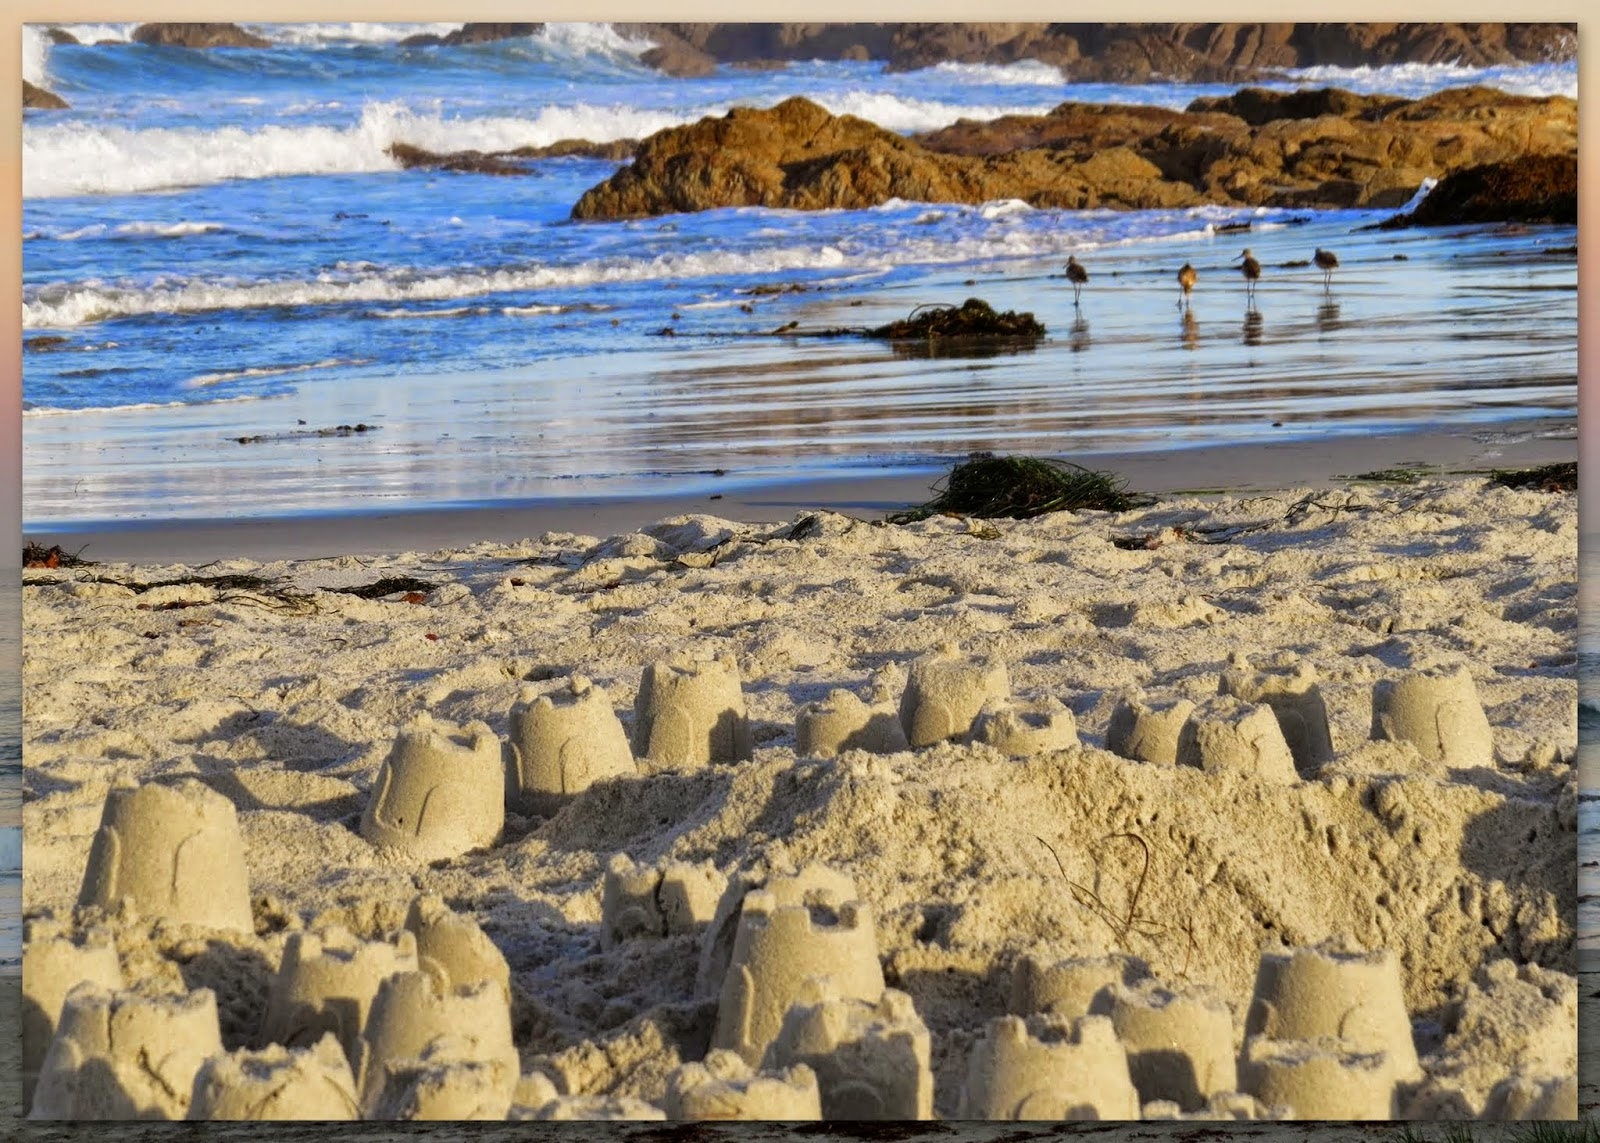 Sandcastles on the beach